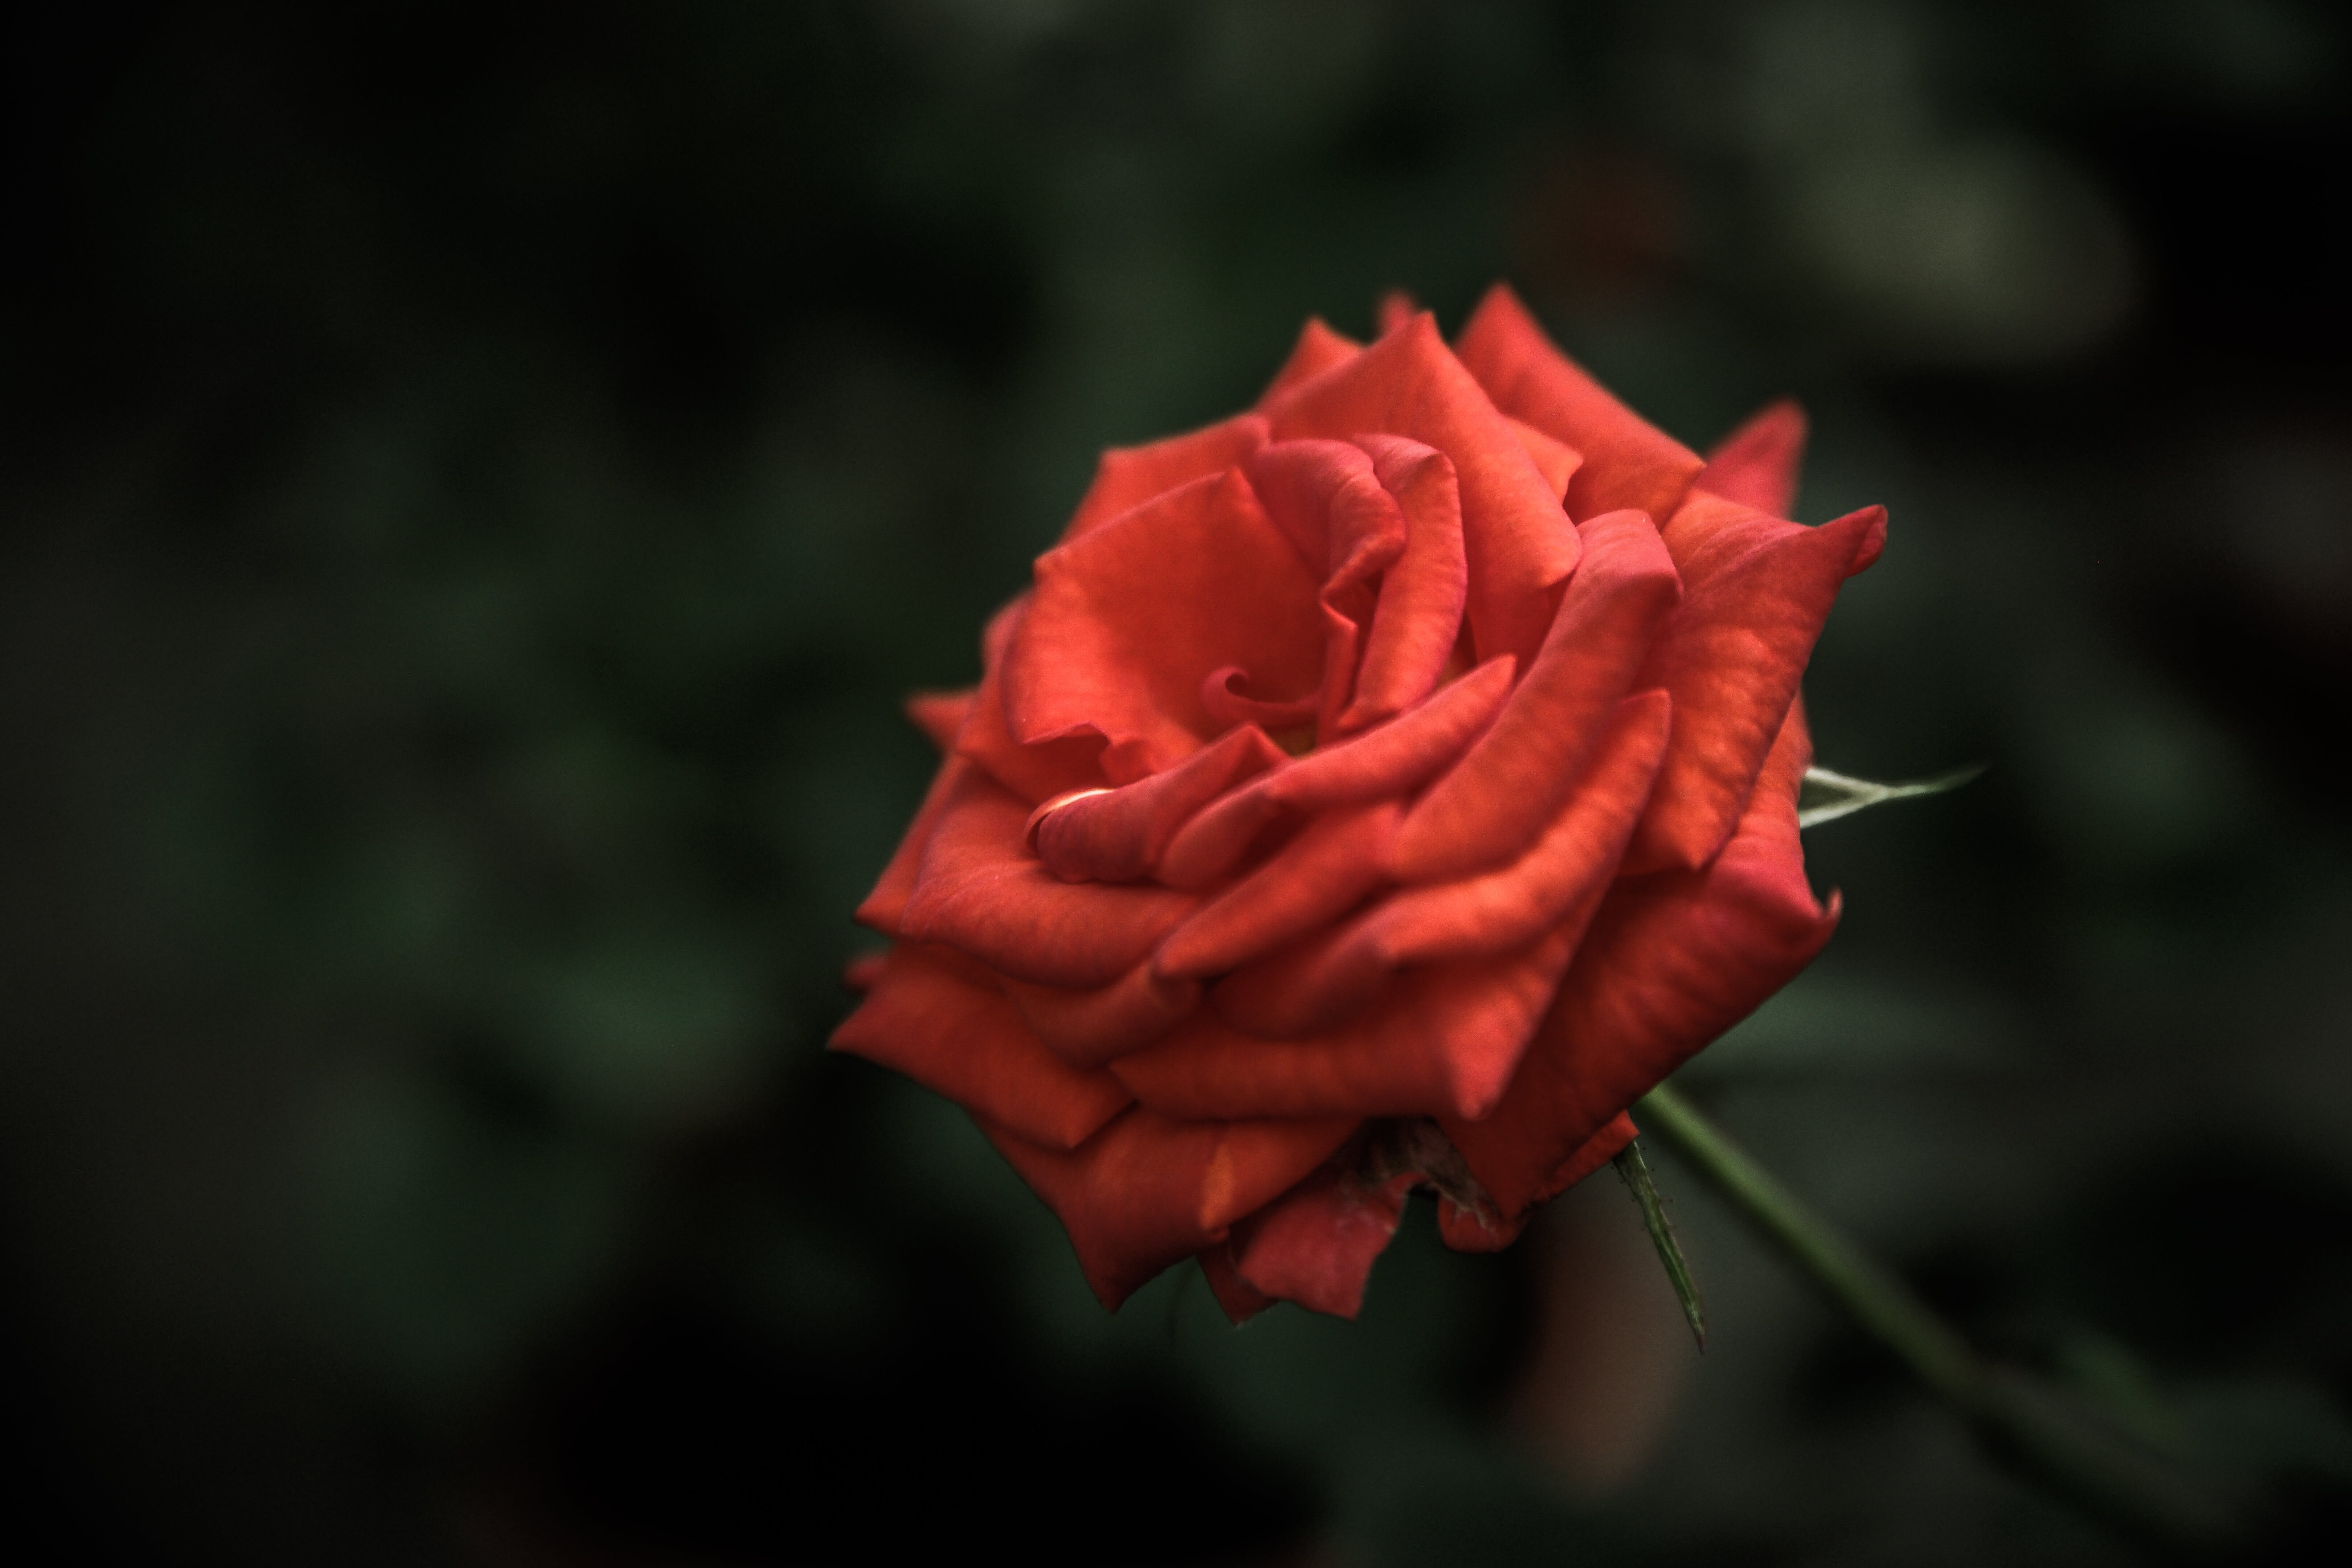 Red Rose Flower in Focus Photography